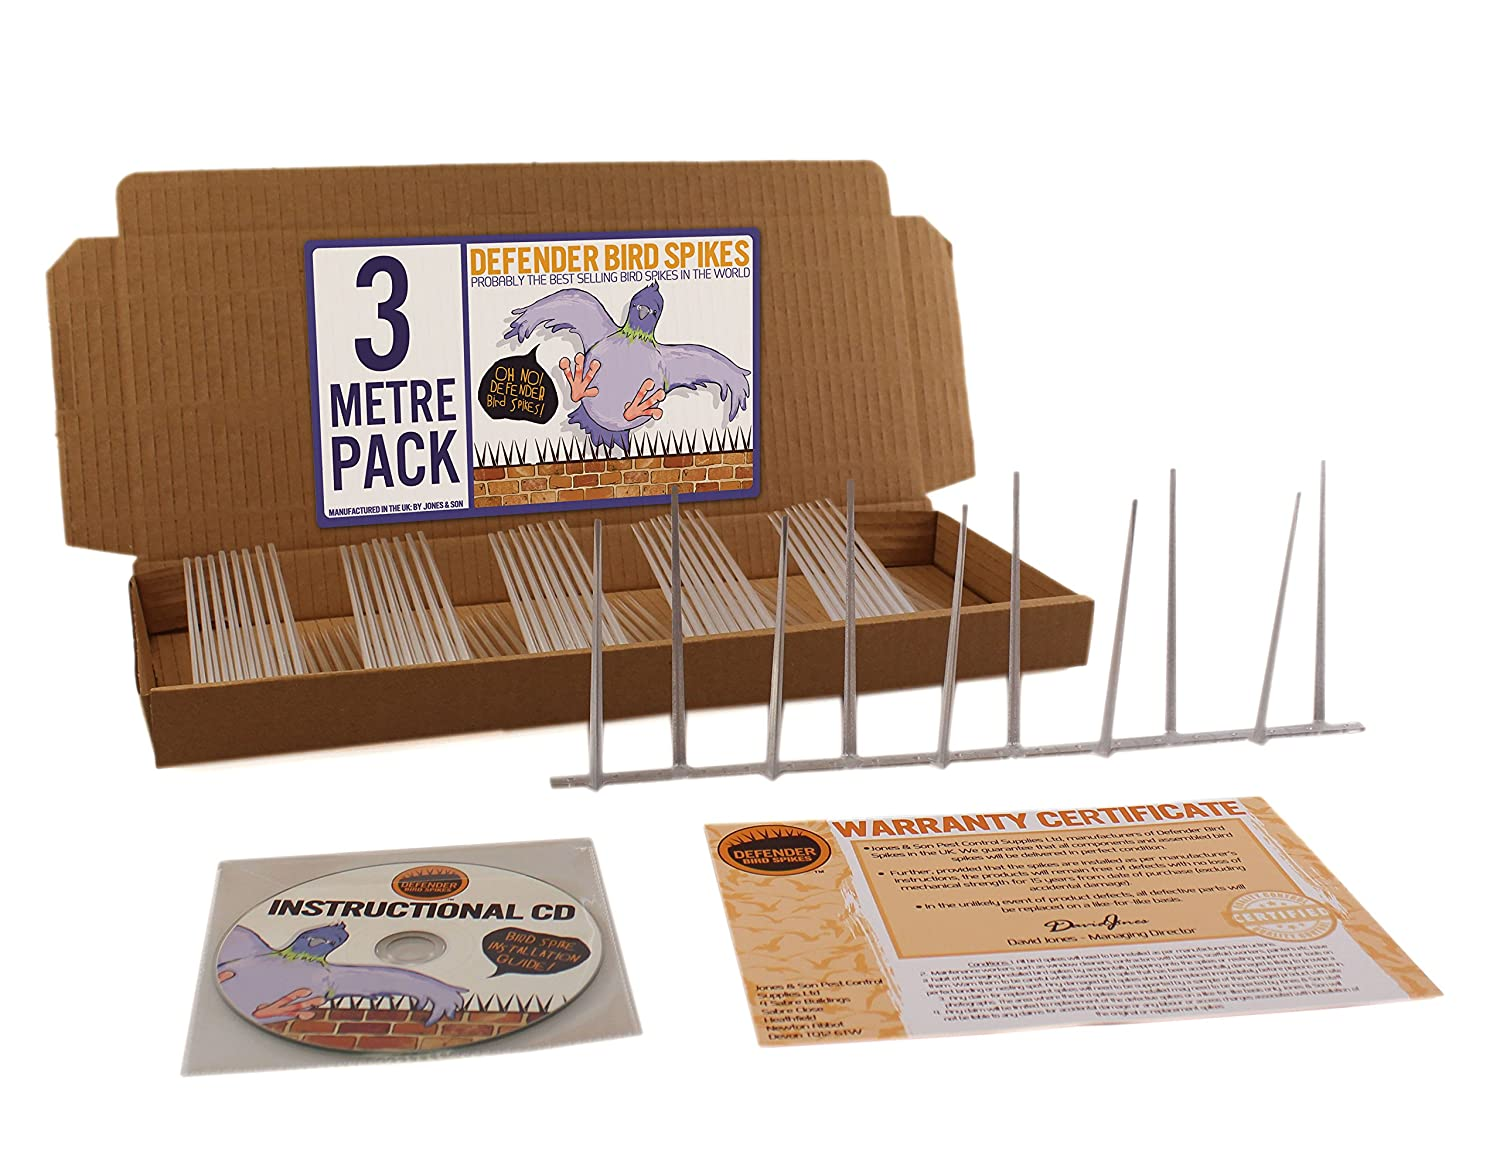 Defender Narrow Plastic Bird and Pigeon Spikes 3 Metre Pack - 9 x 334mm strips. A humane Bird and Pigeon Control Deterrent. Get rid of pigeons and scare birds with our anti-roosting repellent